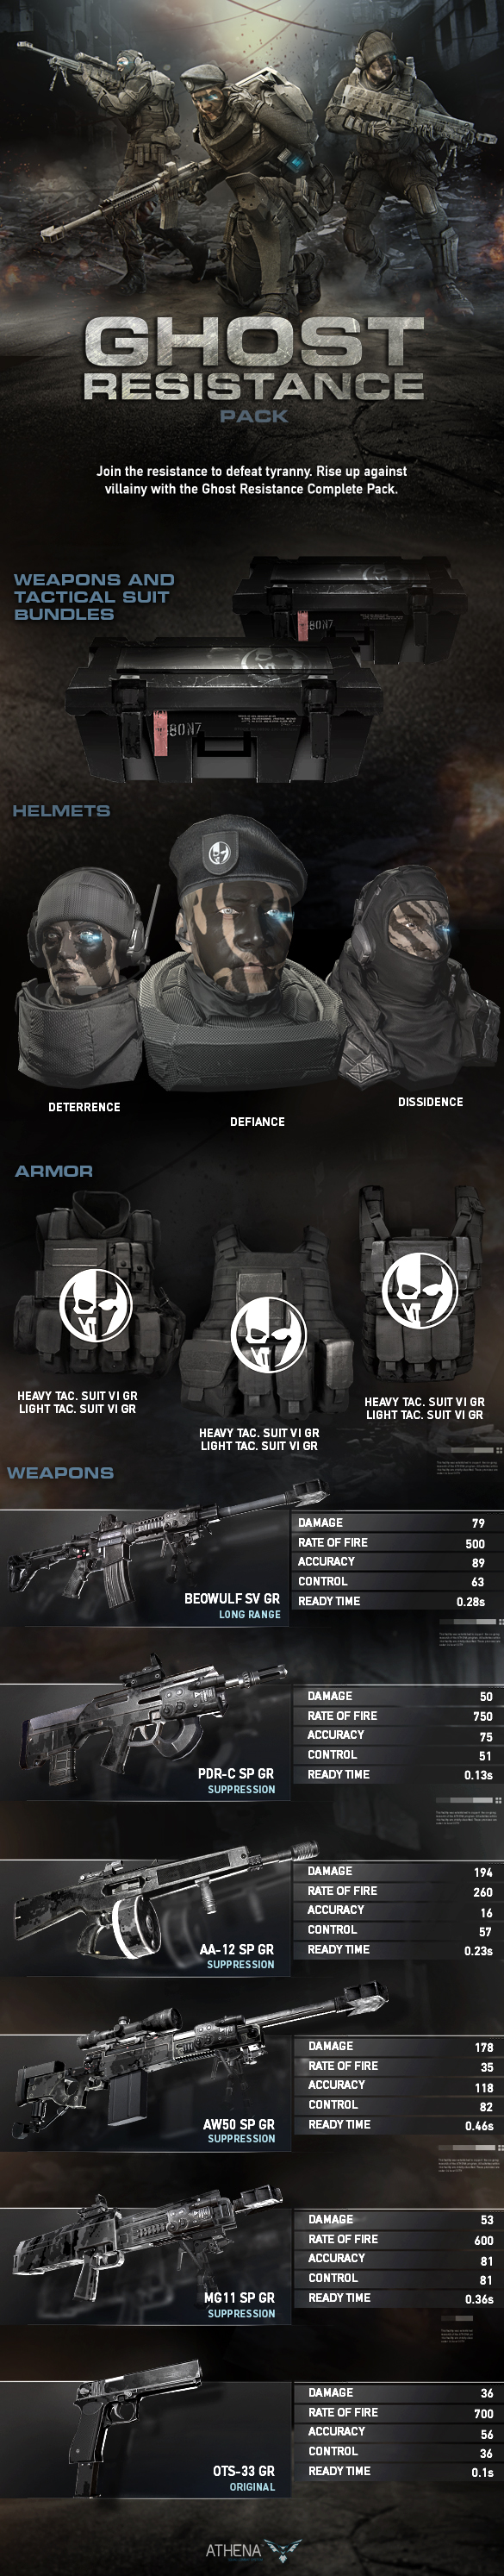 Ghost resistance pack